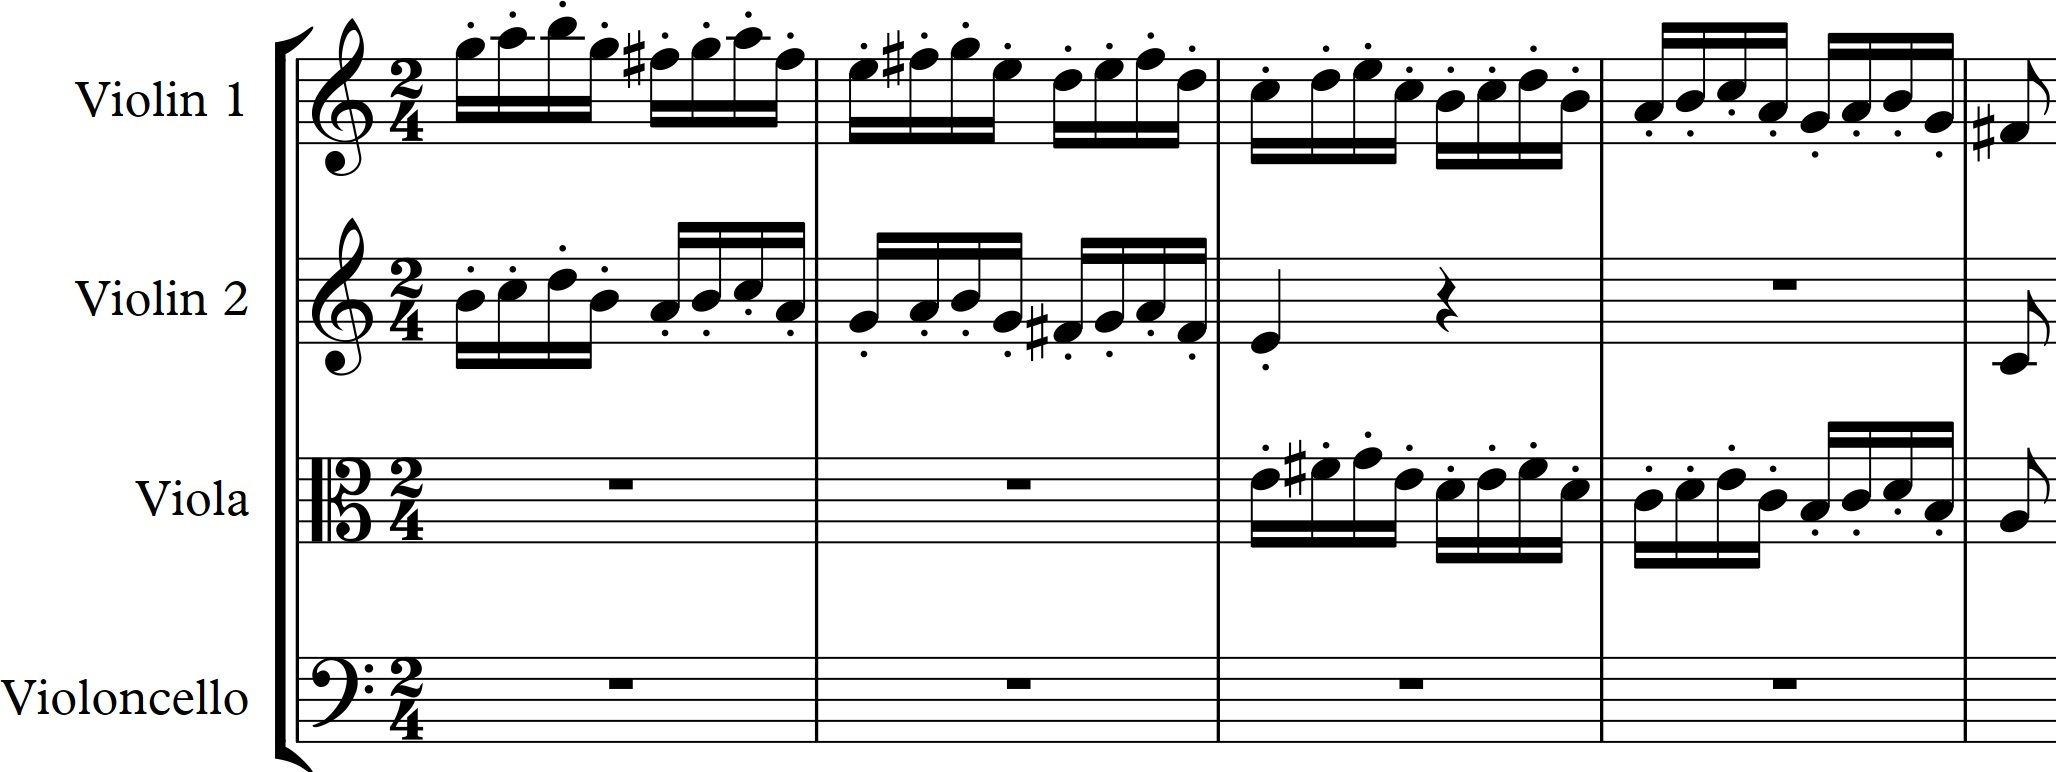 3 Parallel Motion A Level Music